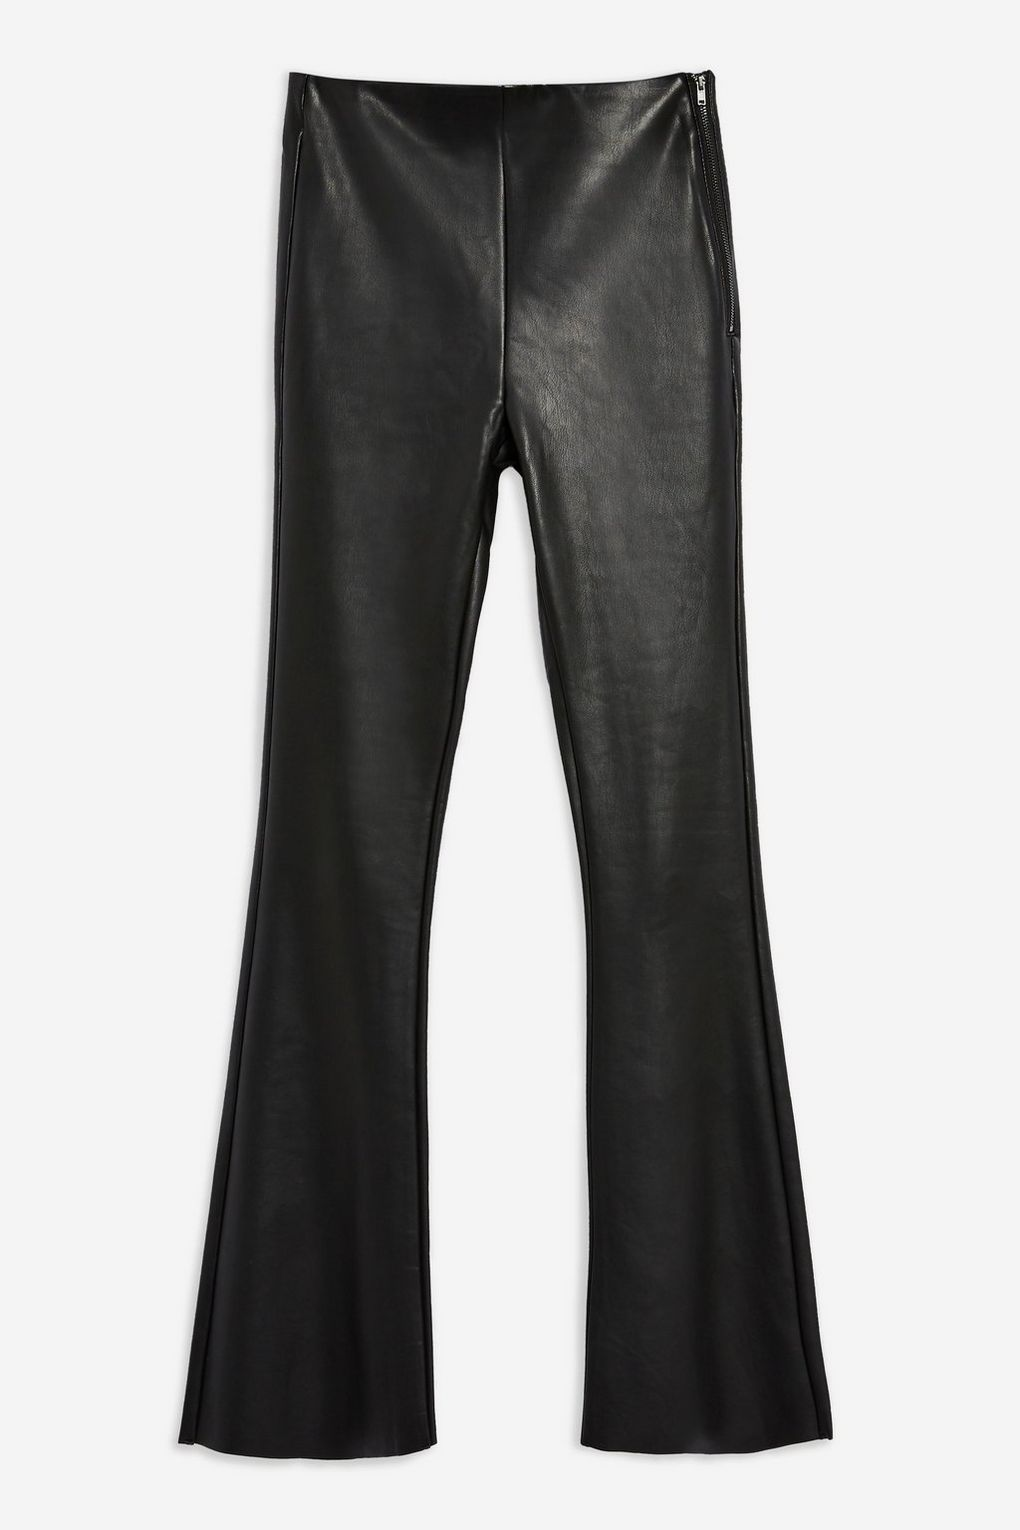 topshop leather trousers november star sign style edit seven